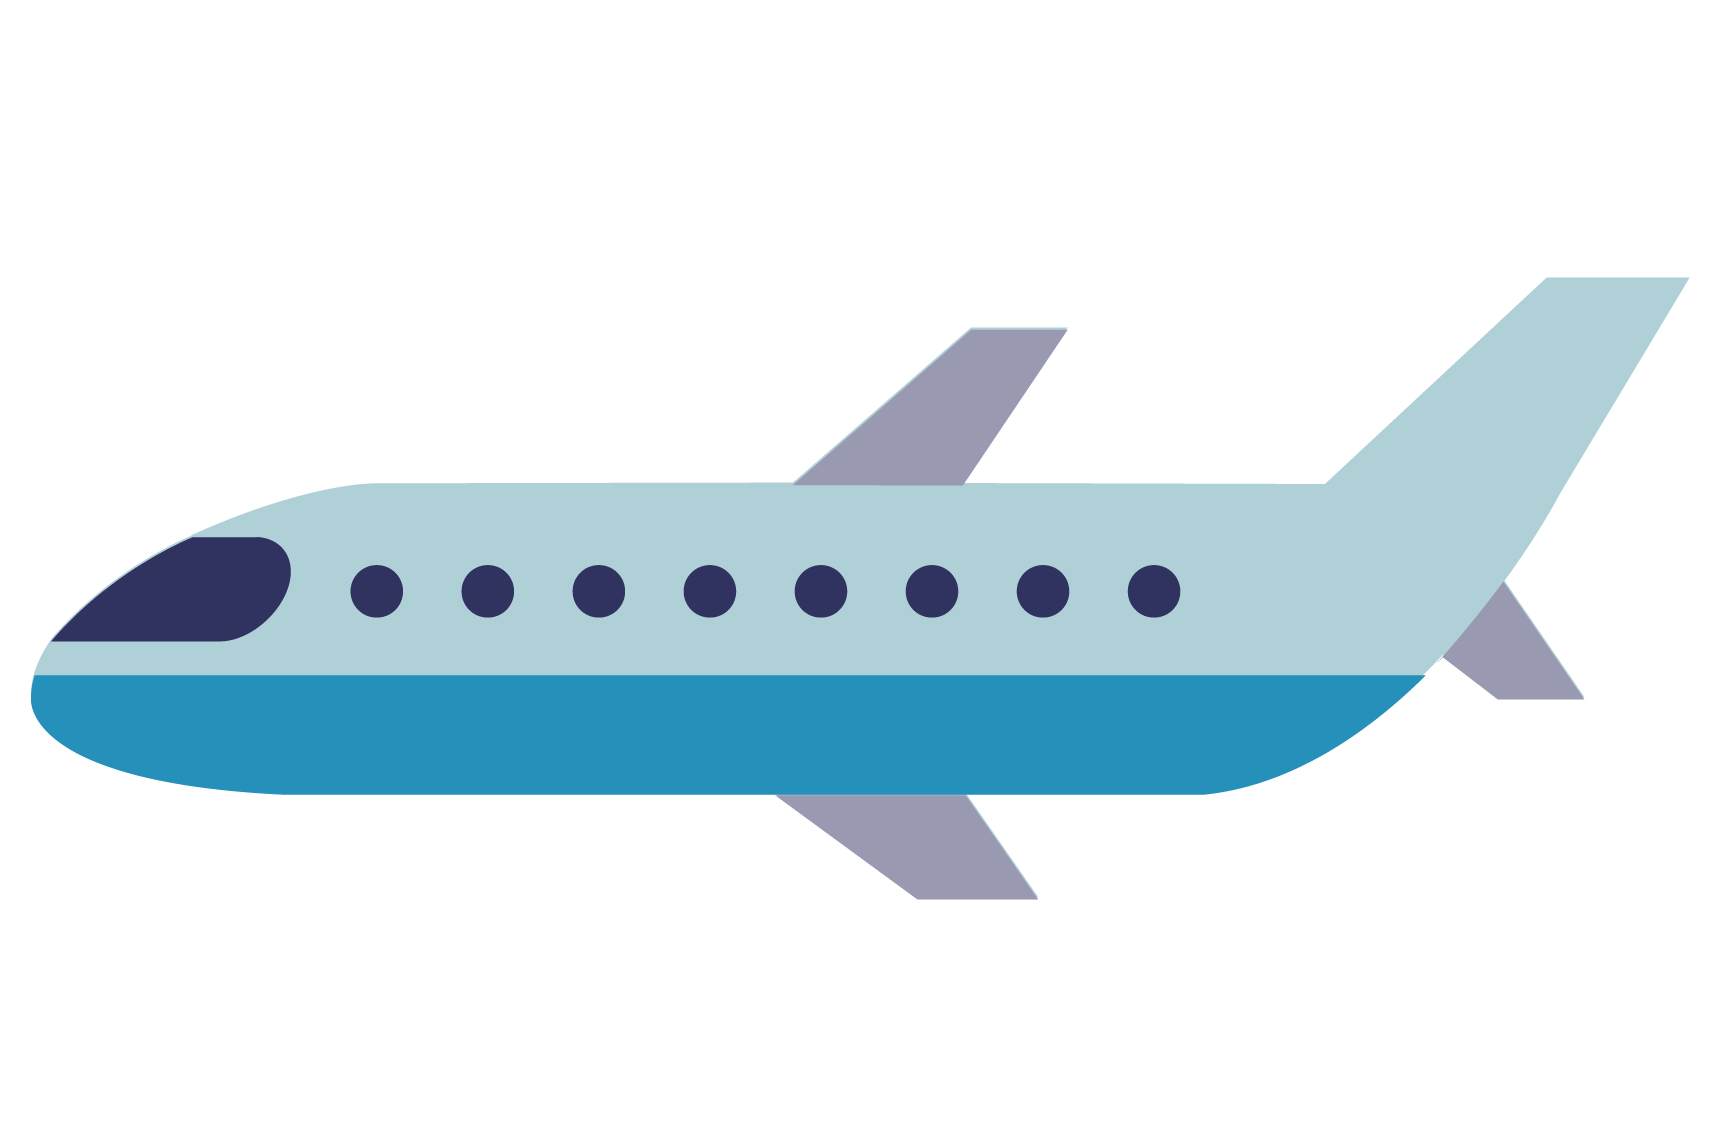 Cartoon plane png. Airplane aircraft animation transprent